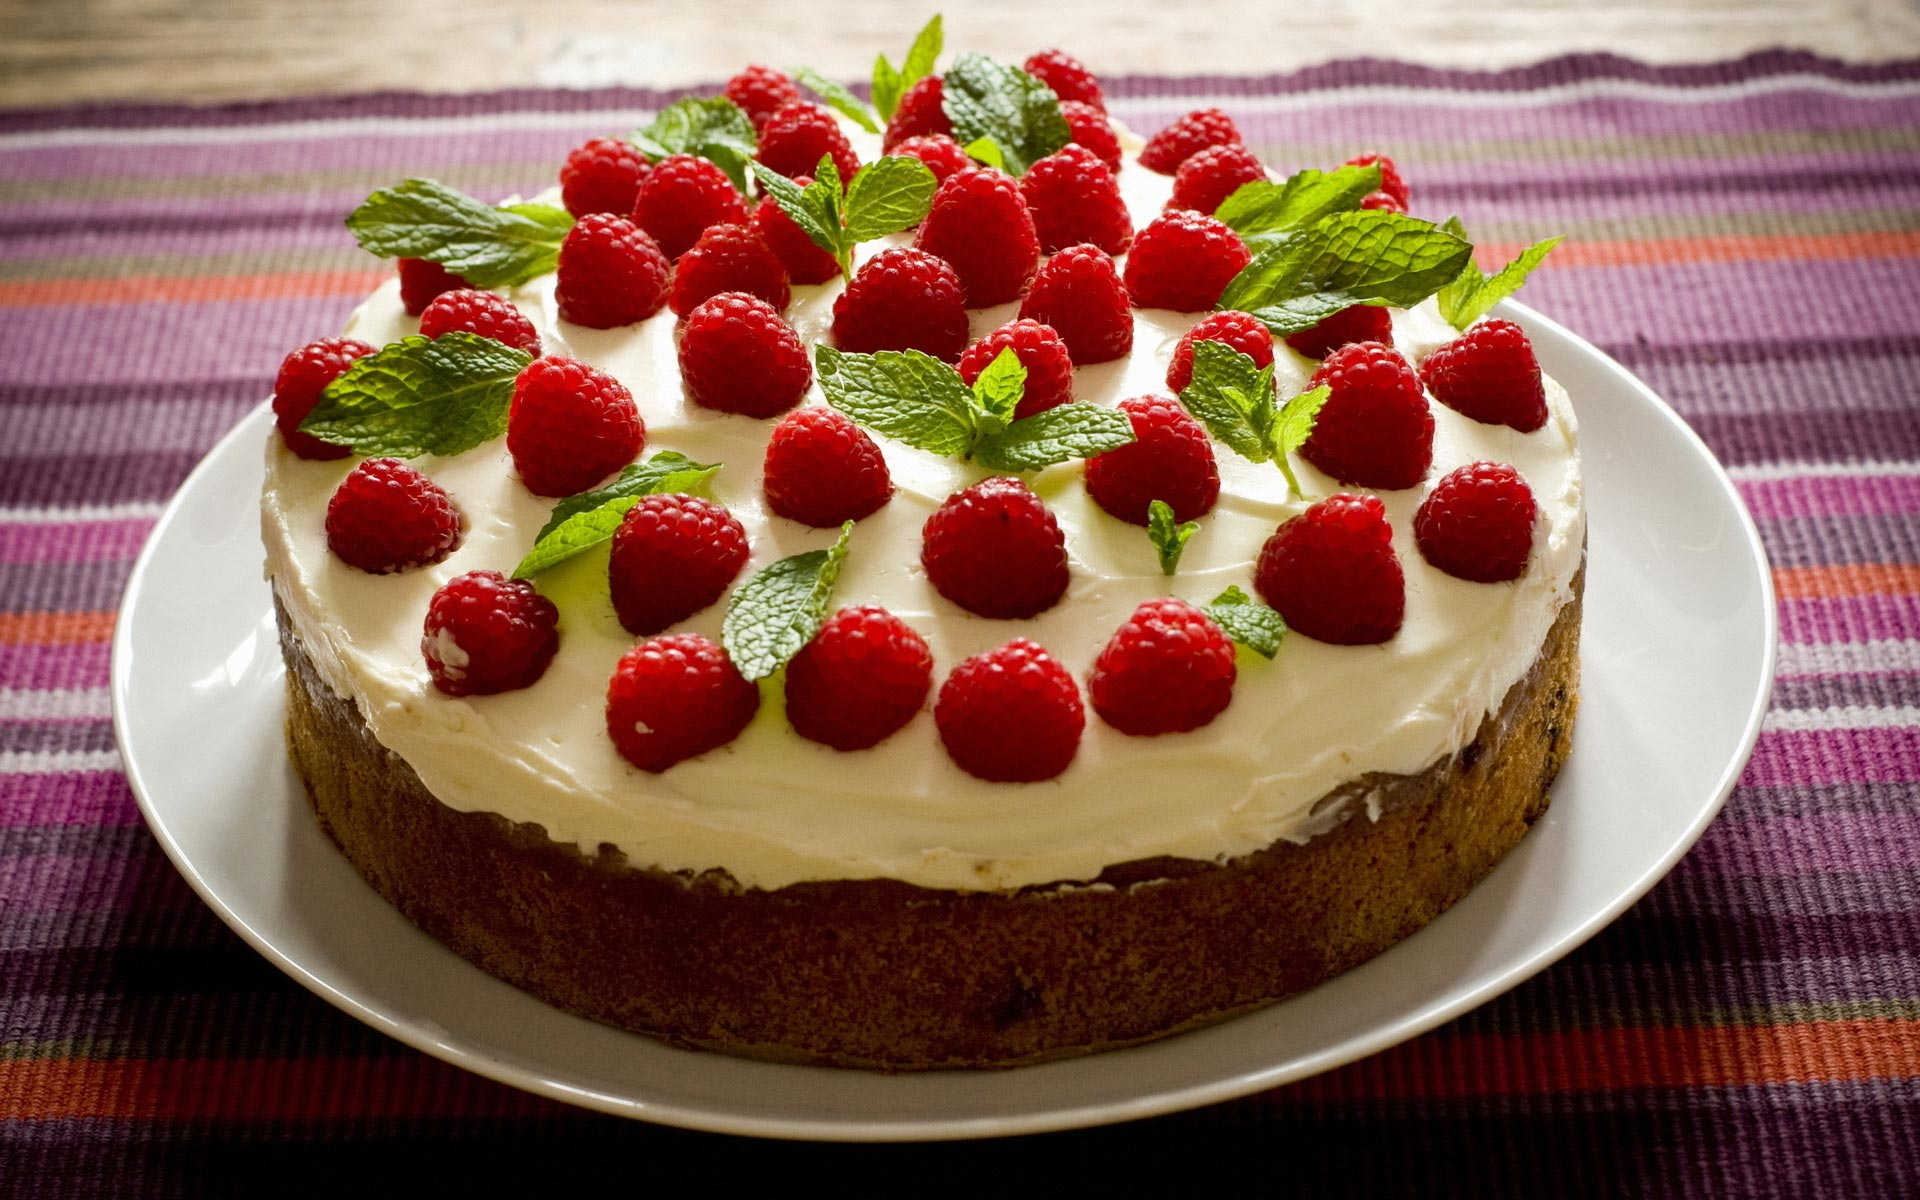 Cake Images High Quality : Cake Wallpapers High Quality Download Free